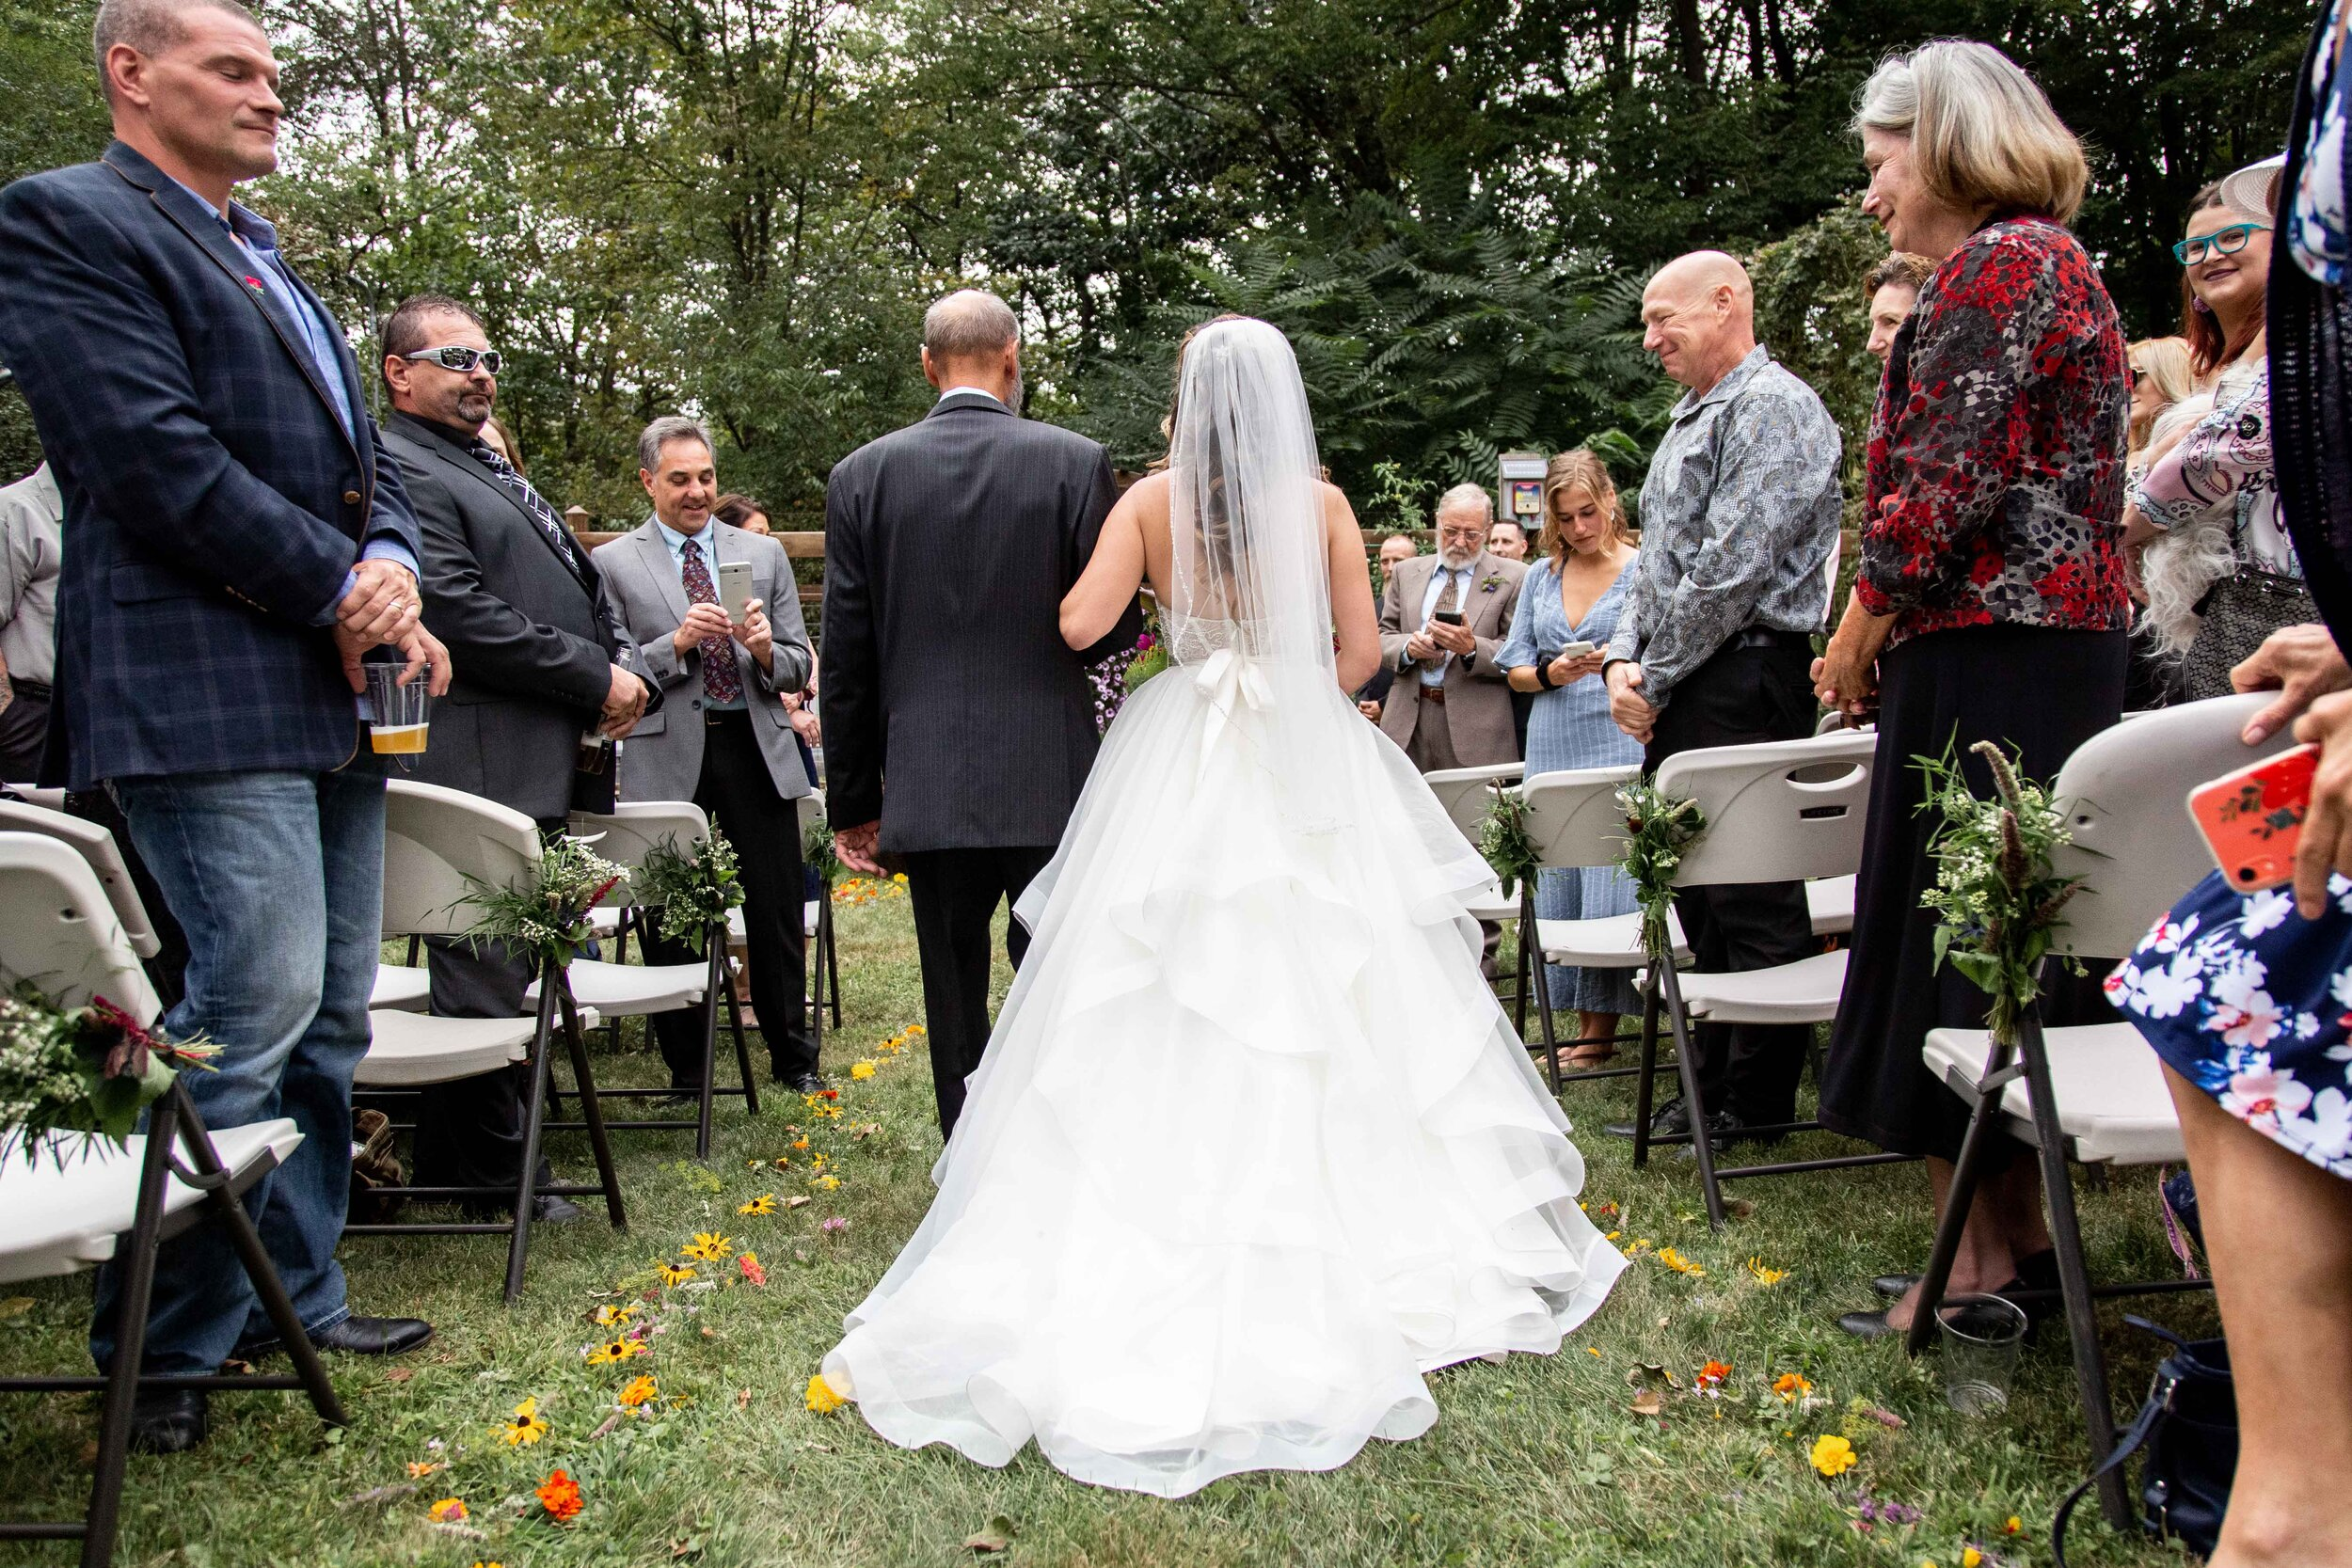 Backyard Homebrew Wedding in Branchville NJ by Dan Schenker Photography-24.jpg